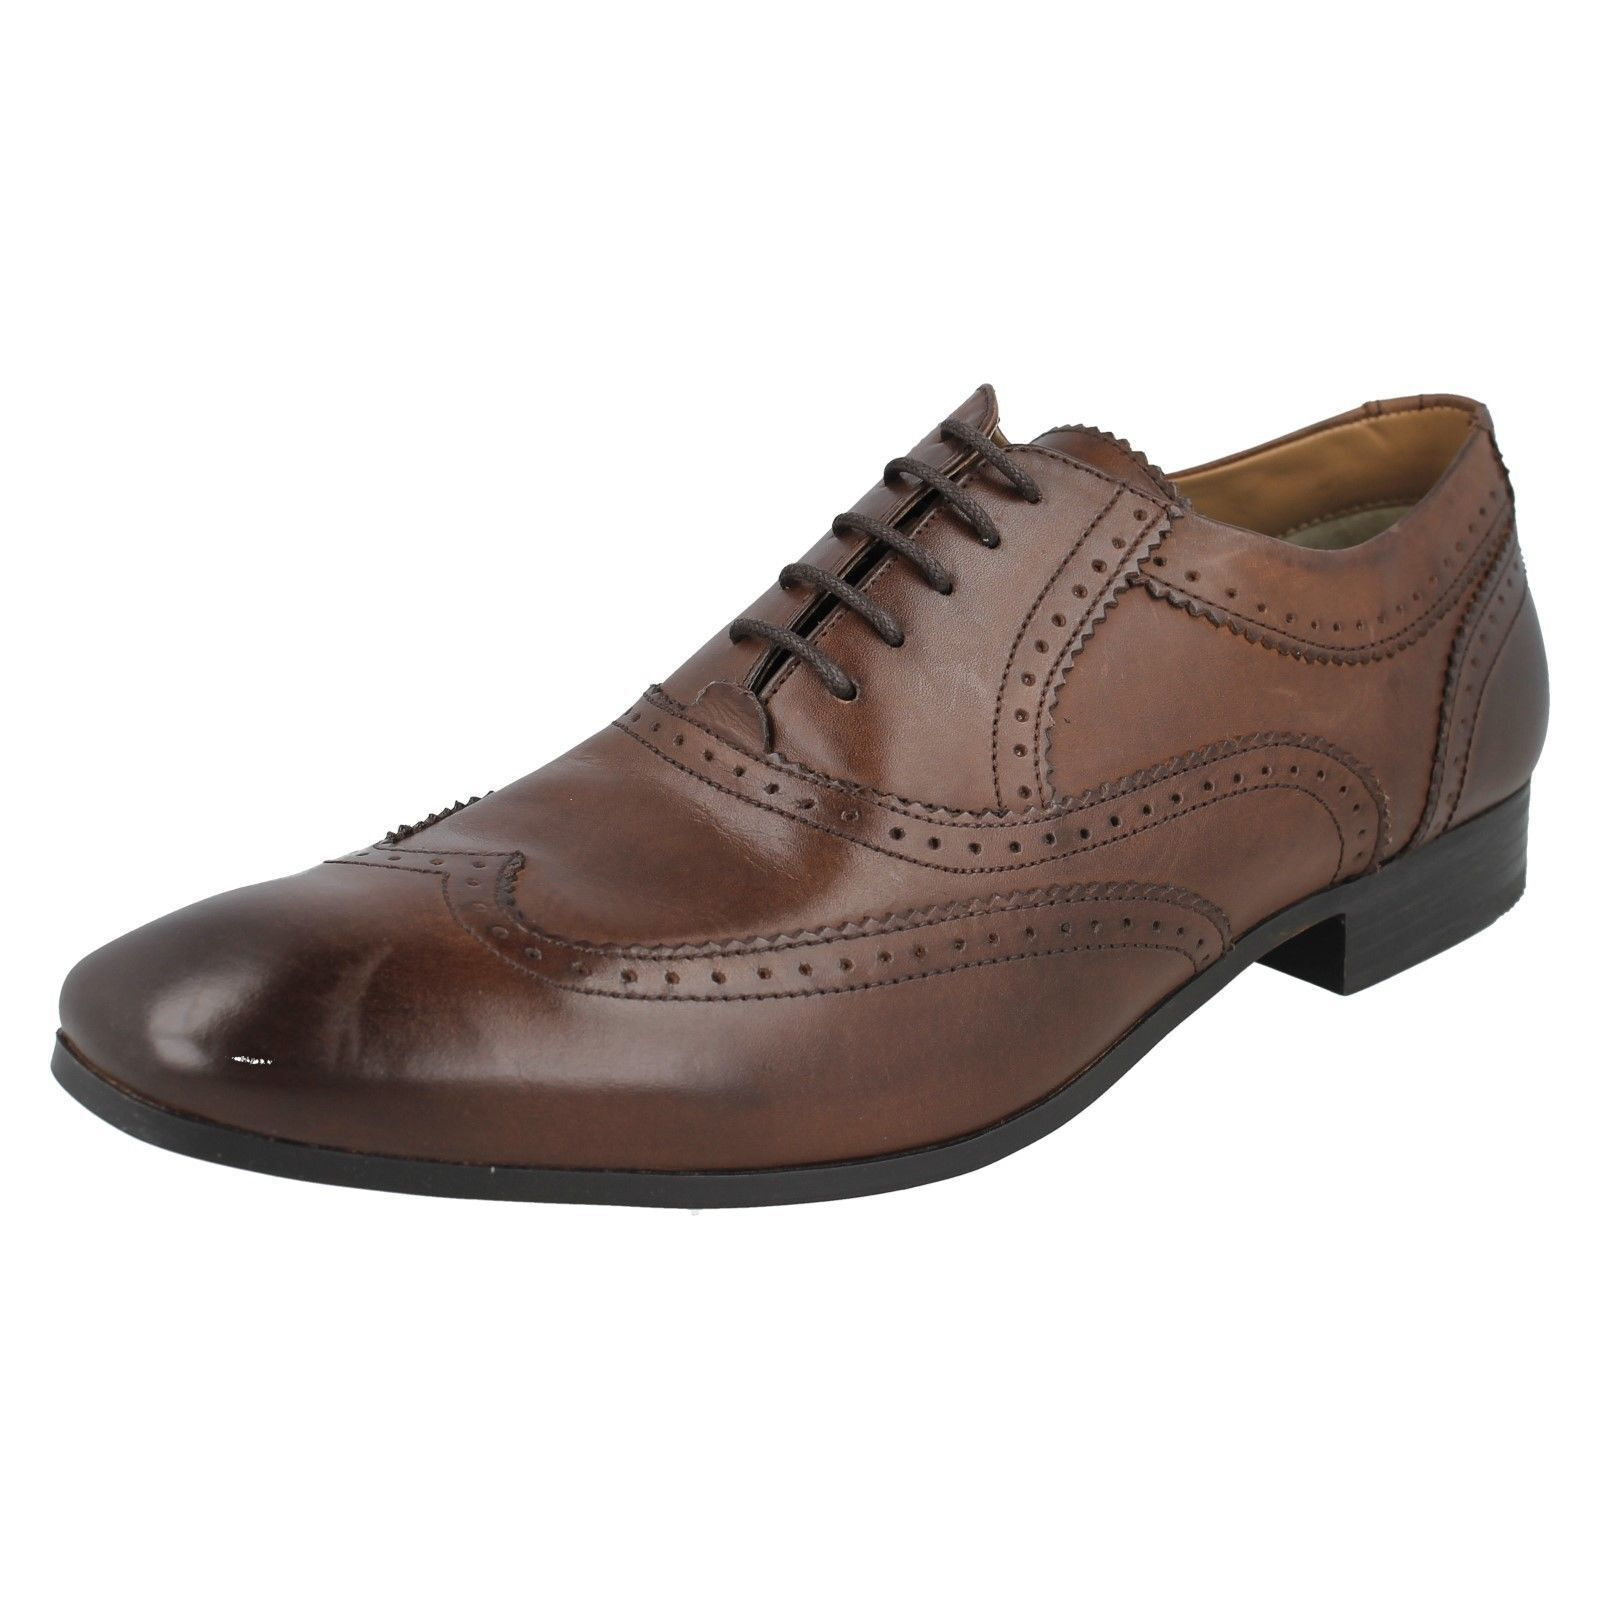 Herren Waxy Tan/Waxy Braun  Leder Lace Court Up Leder Formal Schuhes Court Lace MTO 016013